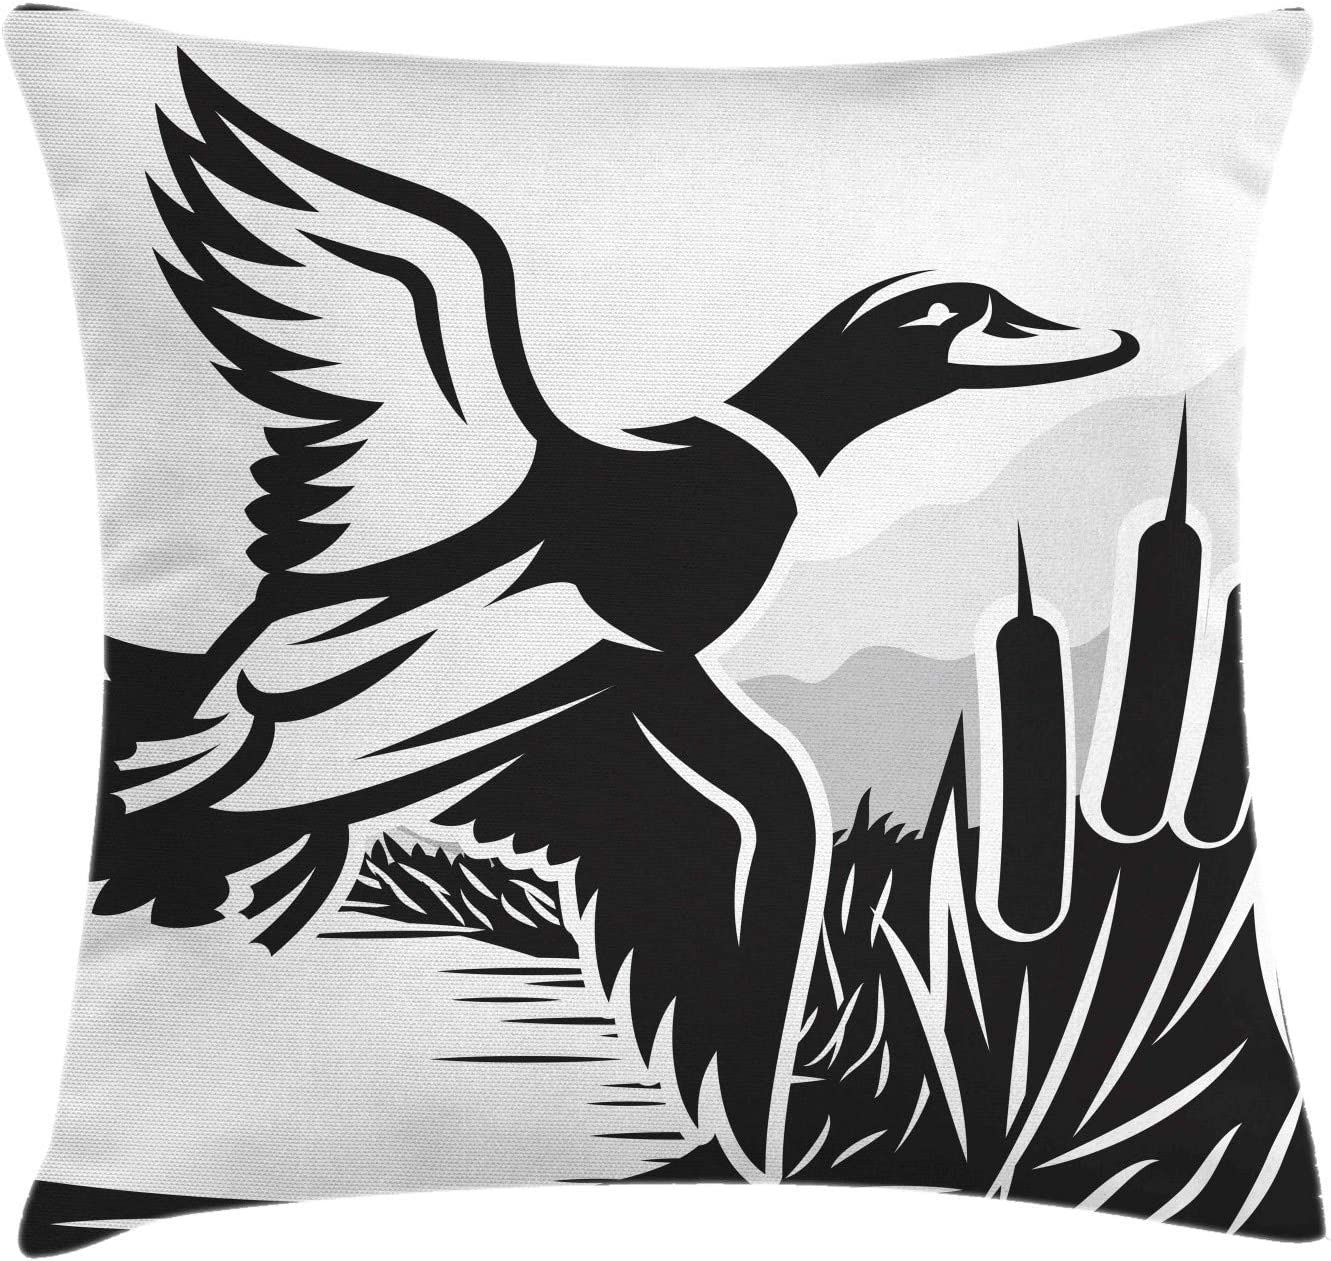 Amazon Com Ambesonne Duck Hunting Throw Pillow Cushion Cover Bold Monochrome Computer Graphics Of A Flying Duck Over The Water Decorative Square Accent Pillow Case 40 X 40 Charcoal Grey And White Home